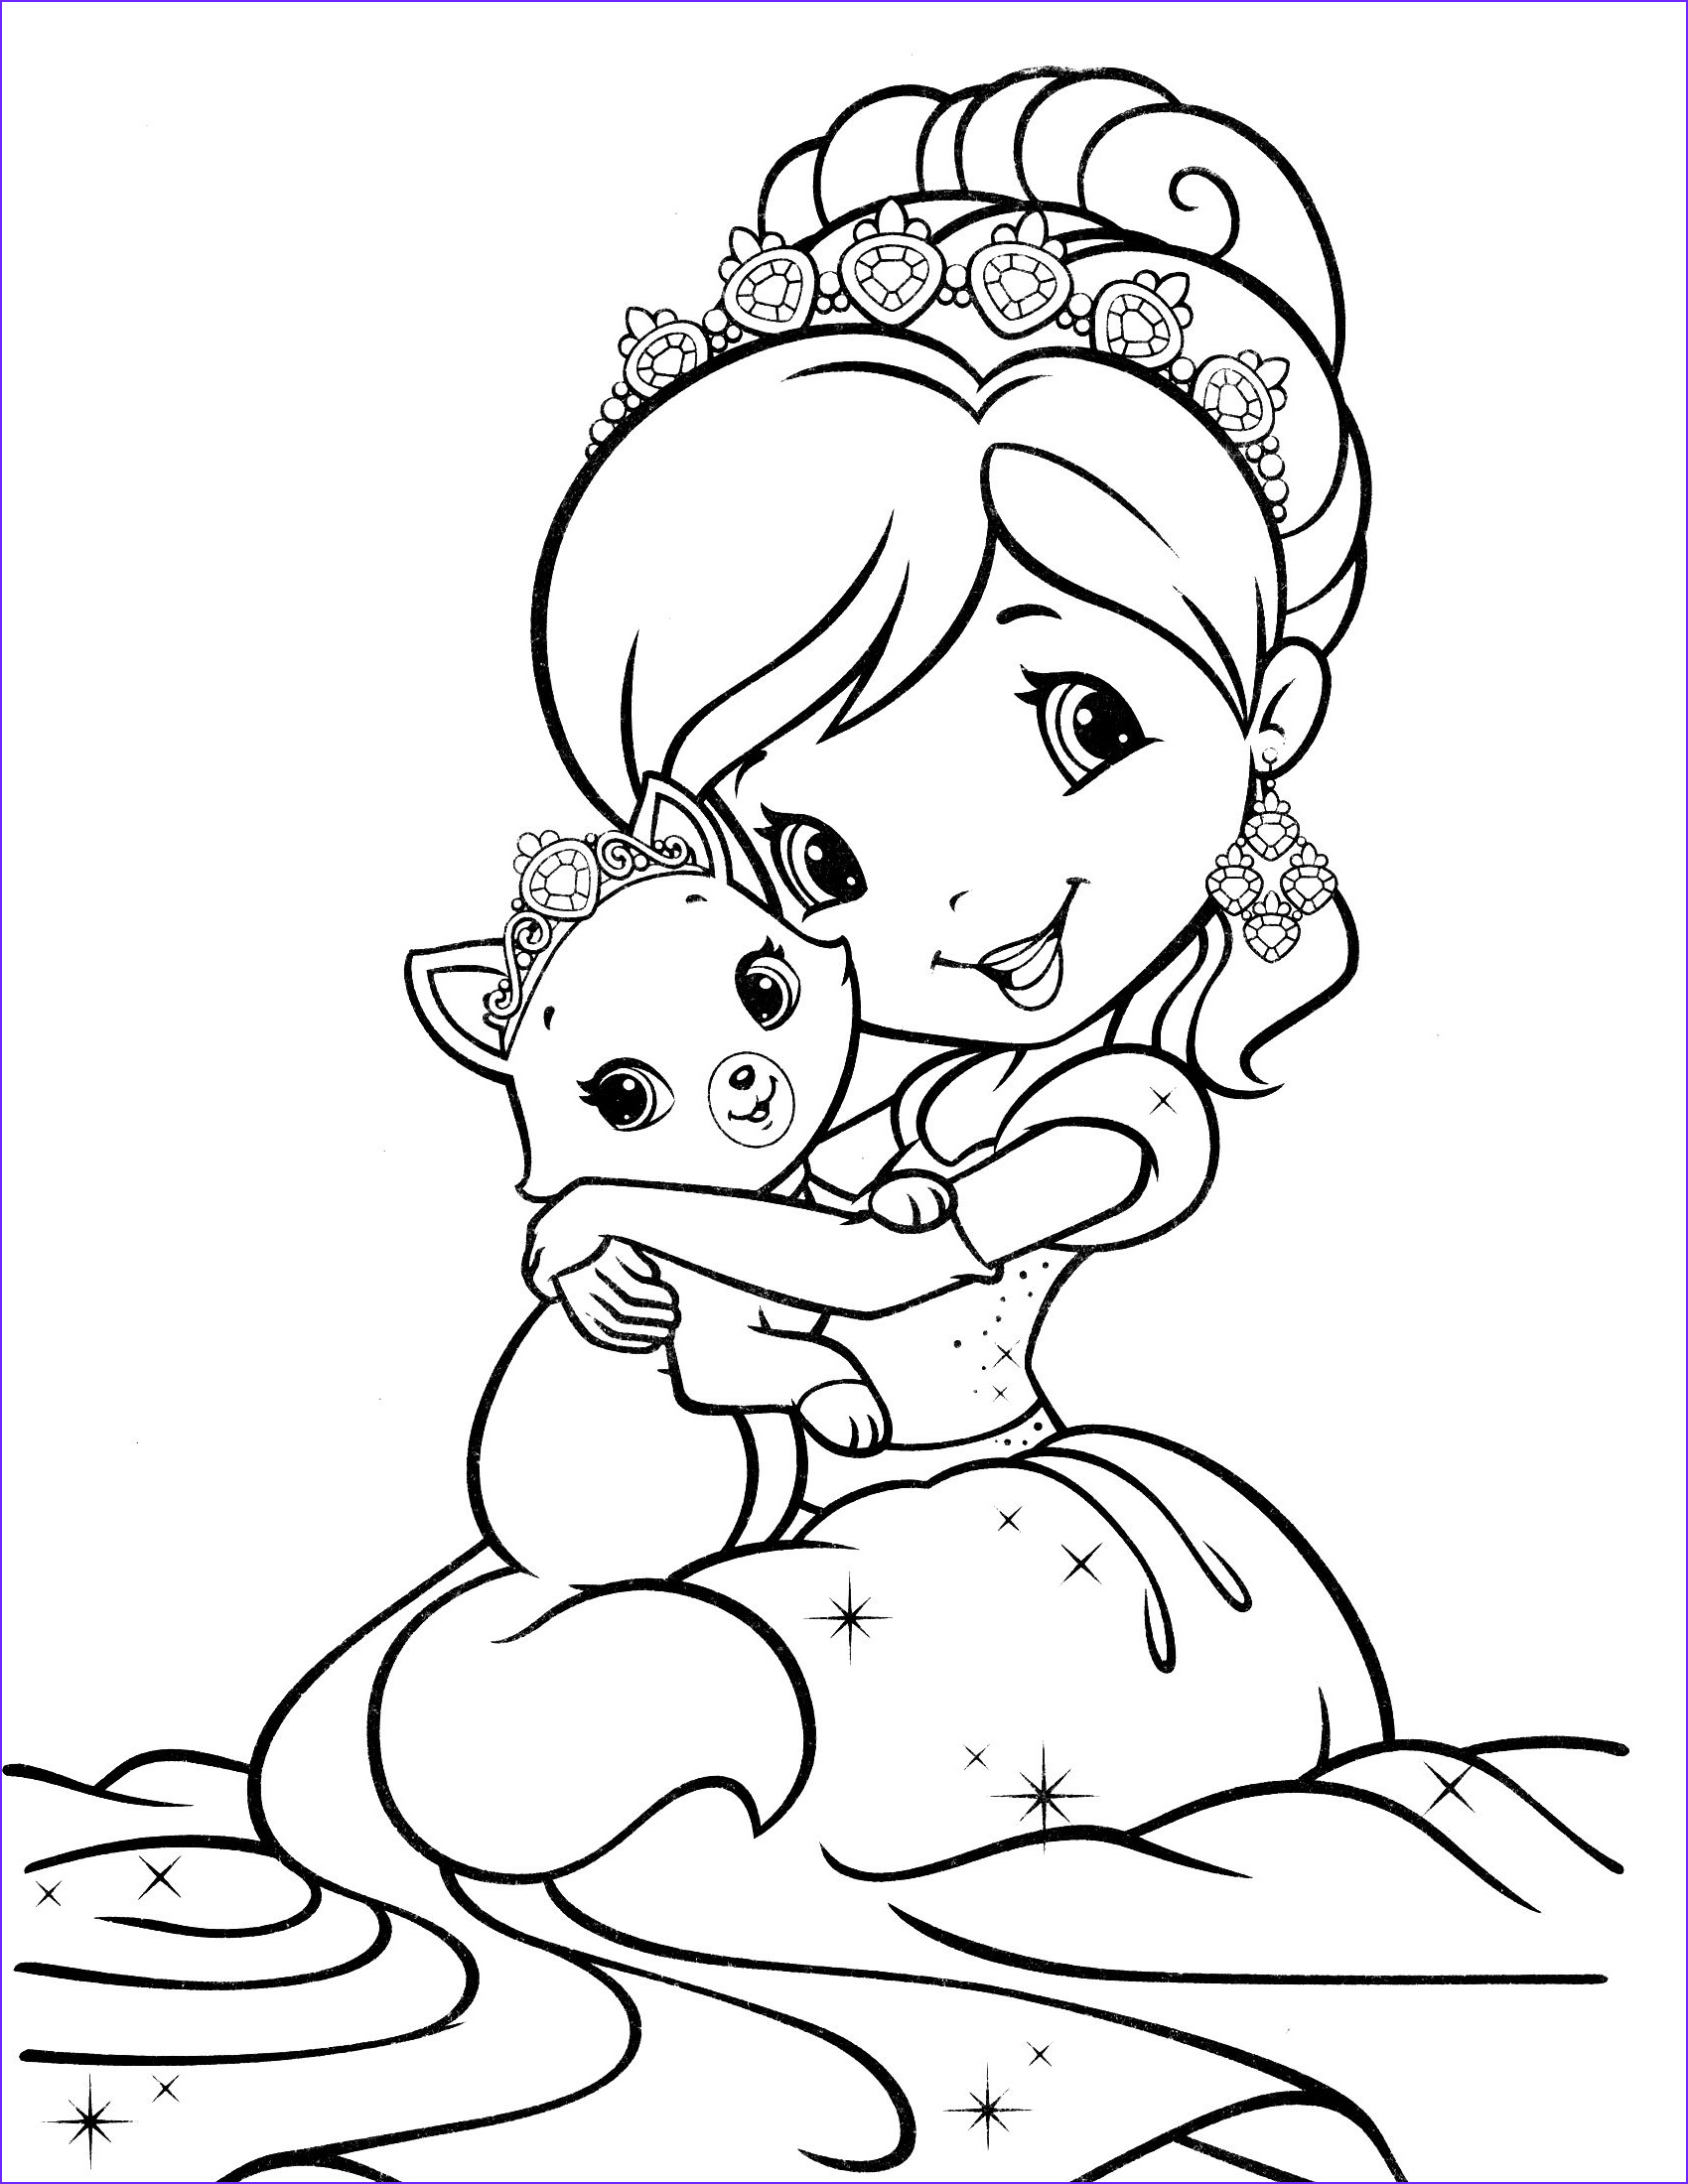 Strawberry Shortcake Coloring Page New Gallery Strawberry Shortcake Coloring Page 38 1700×2200